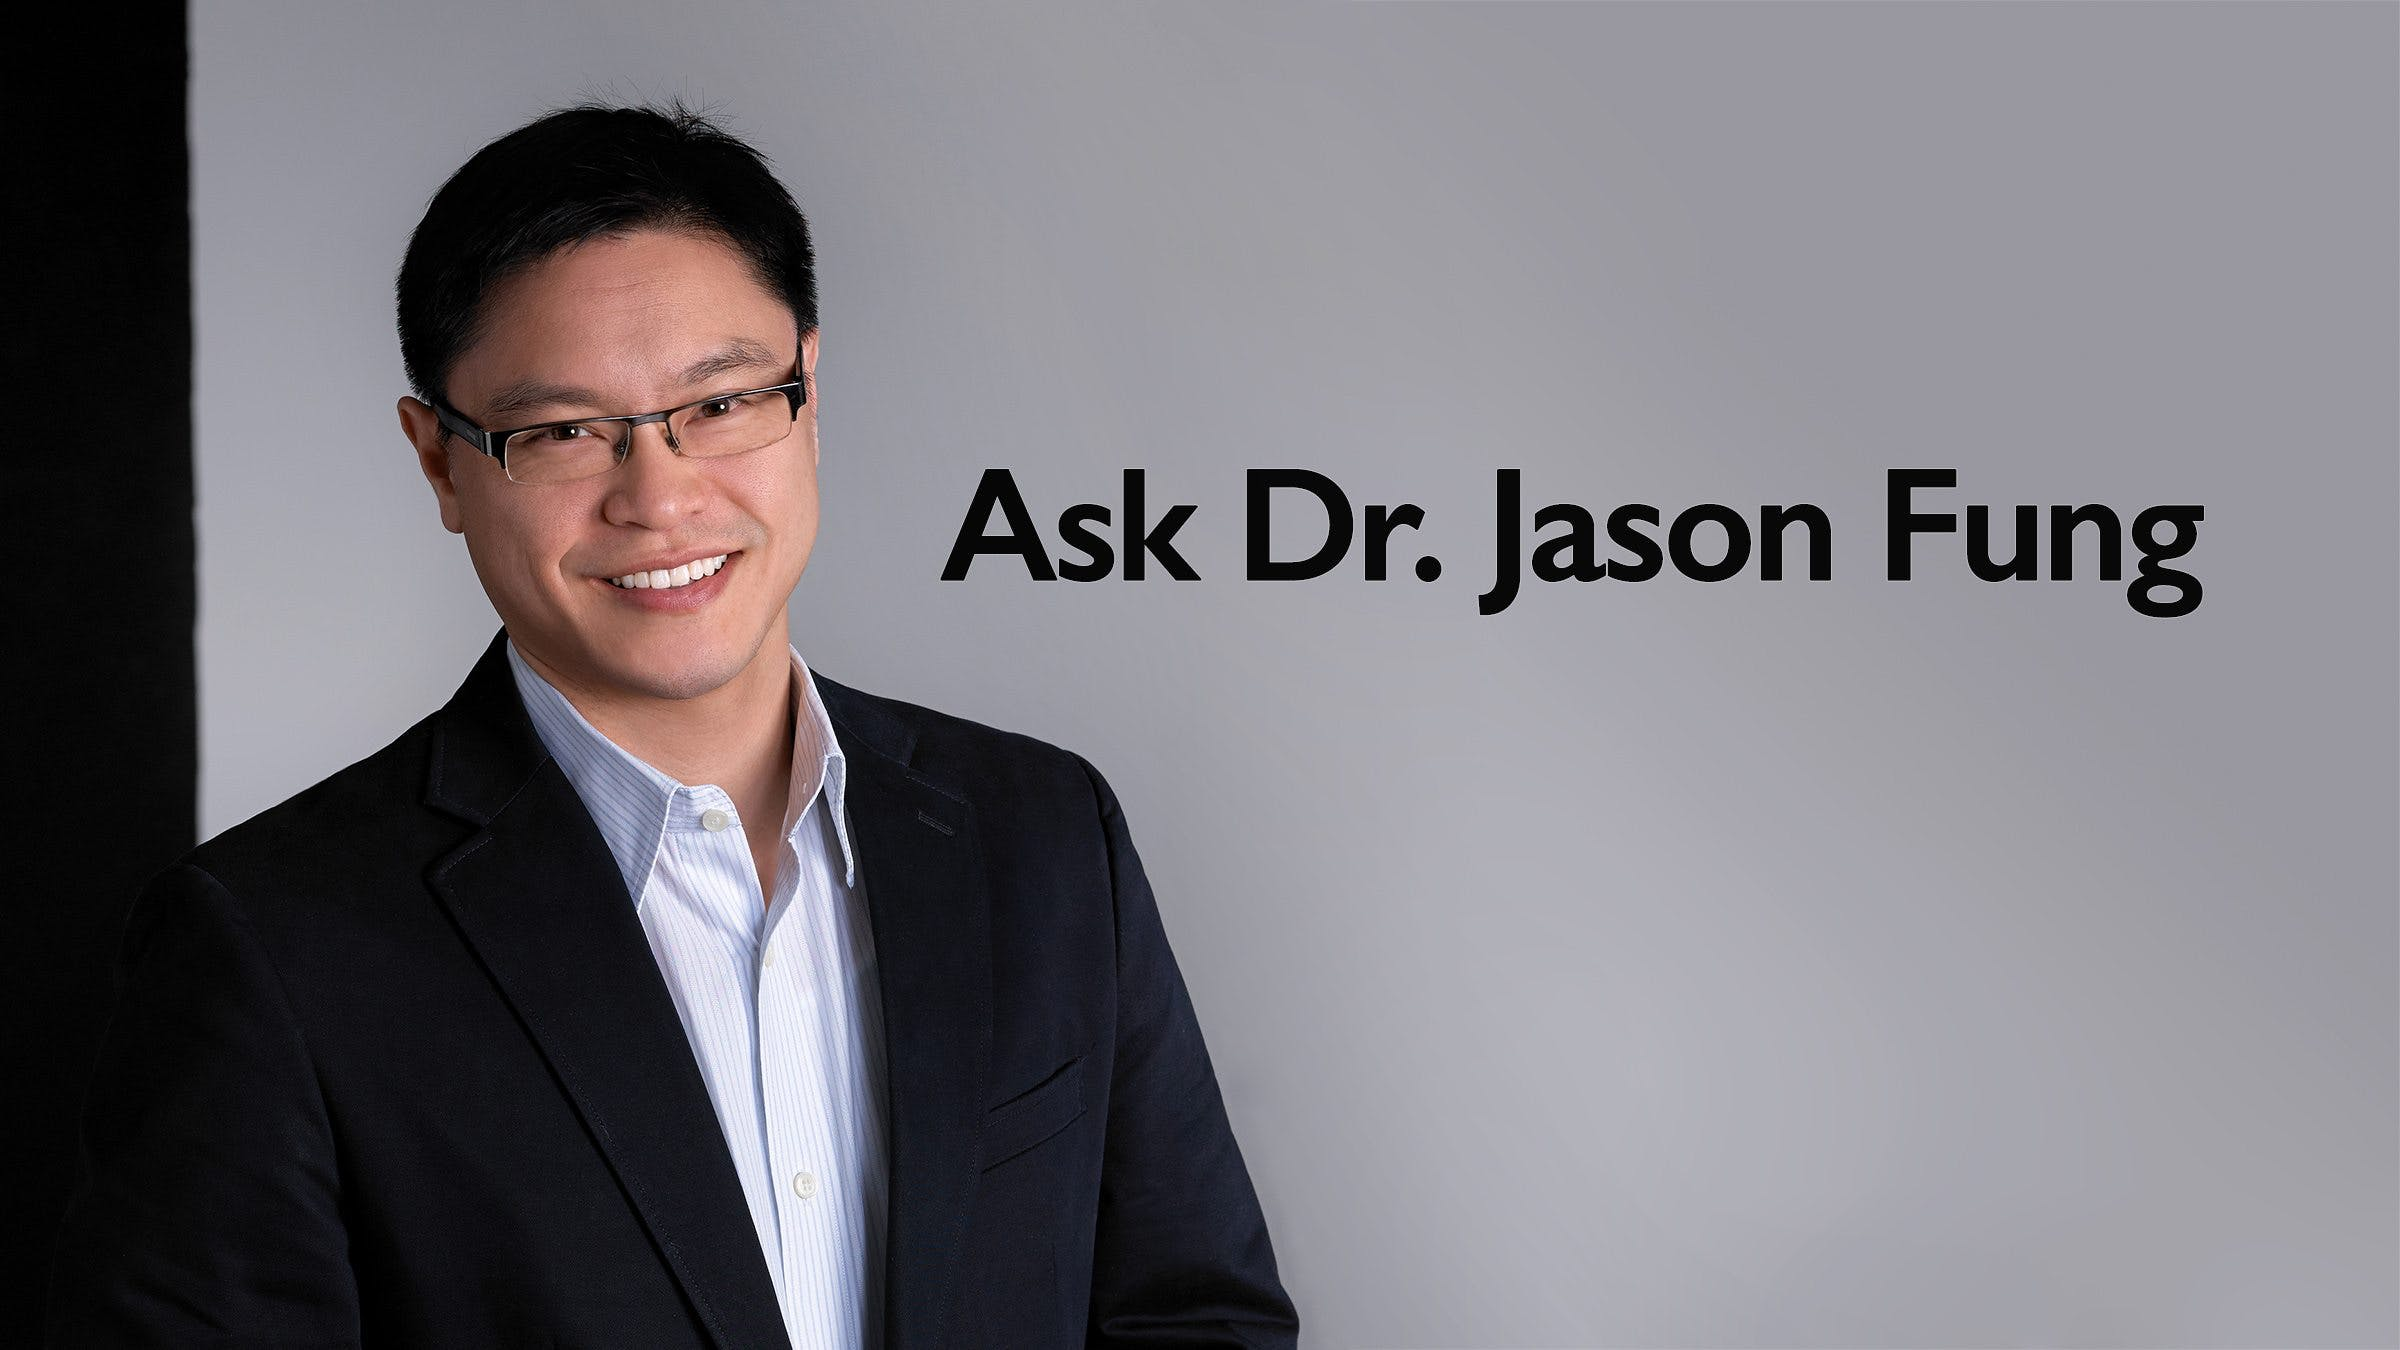 Dr. Jason Fung Answers Questions About Intermittent Fasting